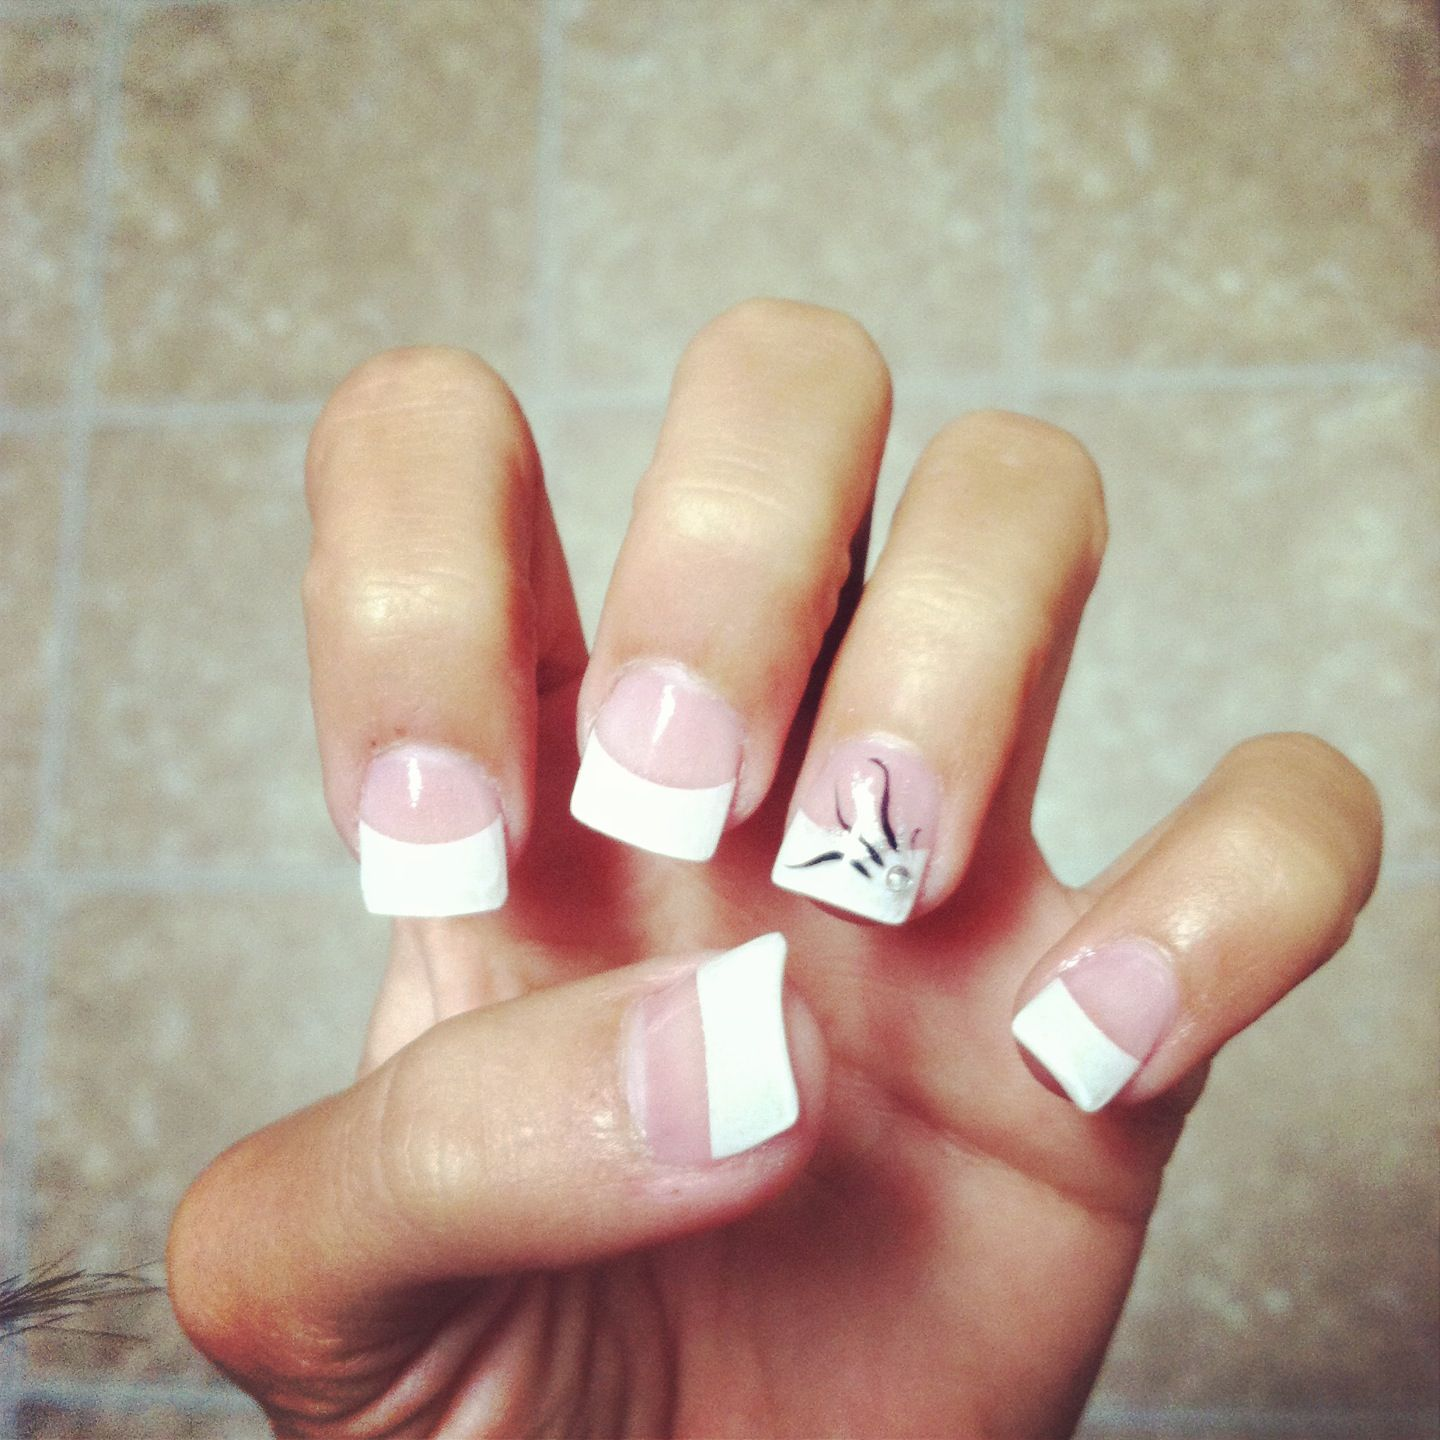 Regular White Tip Acrylic Nails With A Design On My Accent Simple And Cute